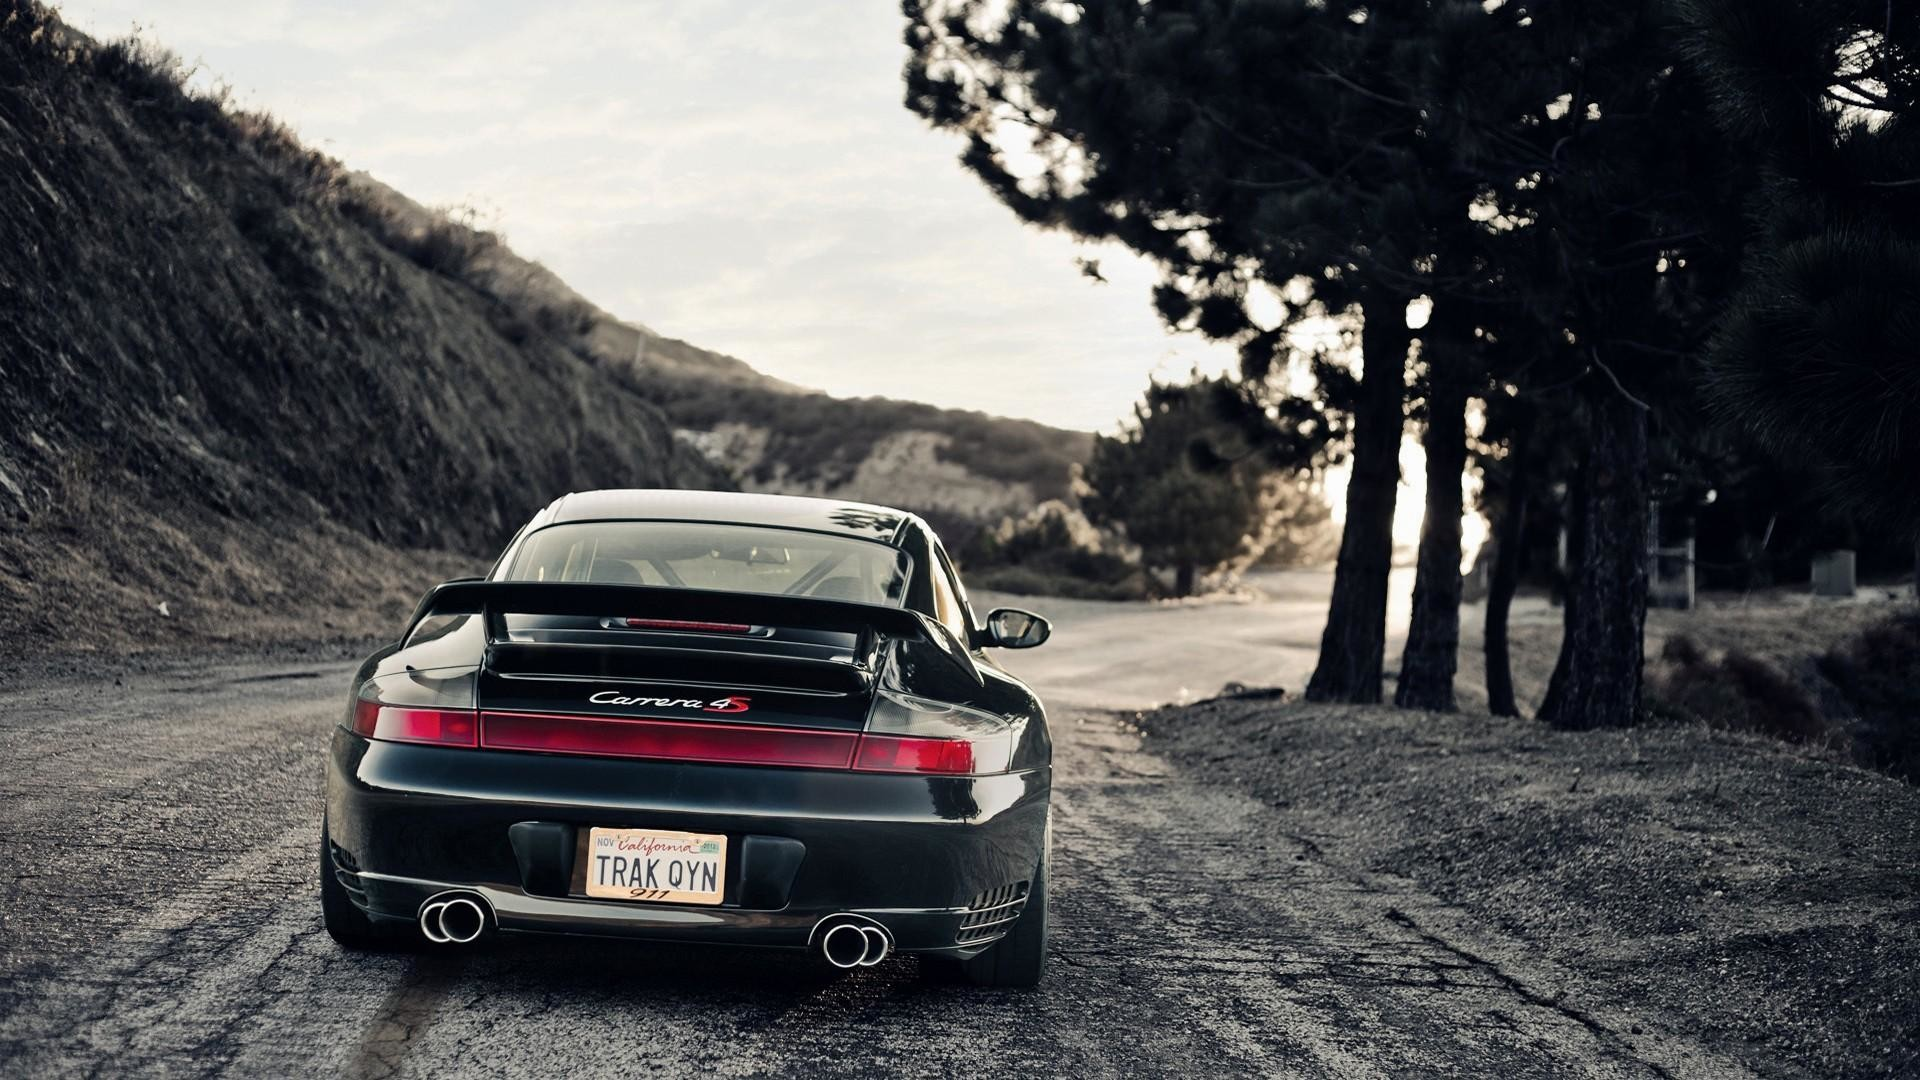 1920x1080 wallpaper.wiki-Porsche-911-Wallpaper-Download-Free-PIC-